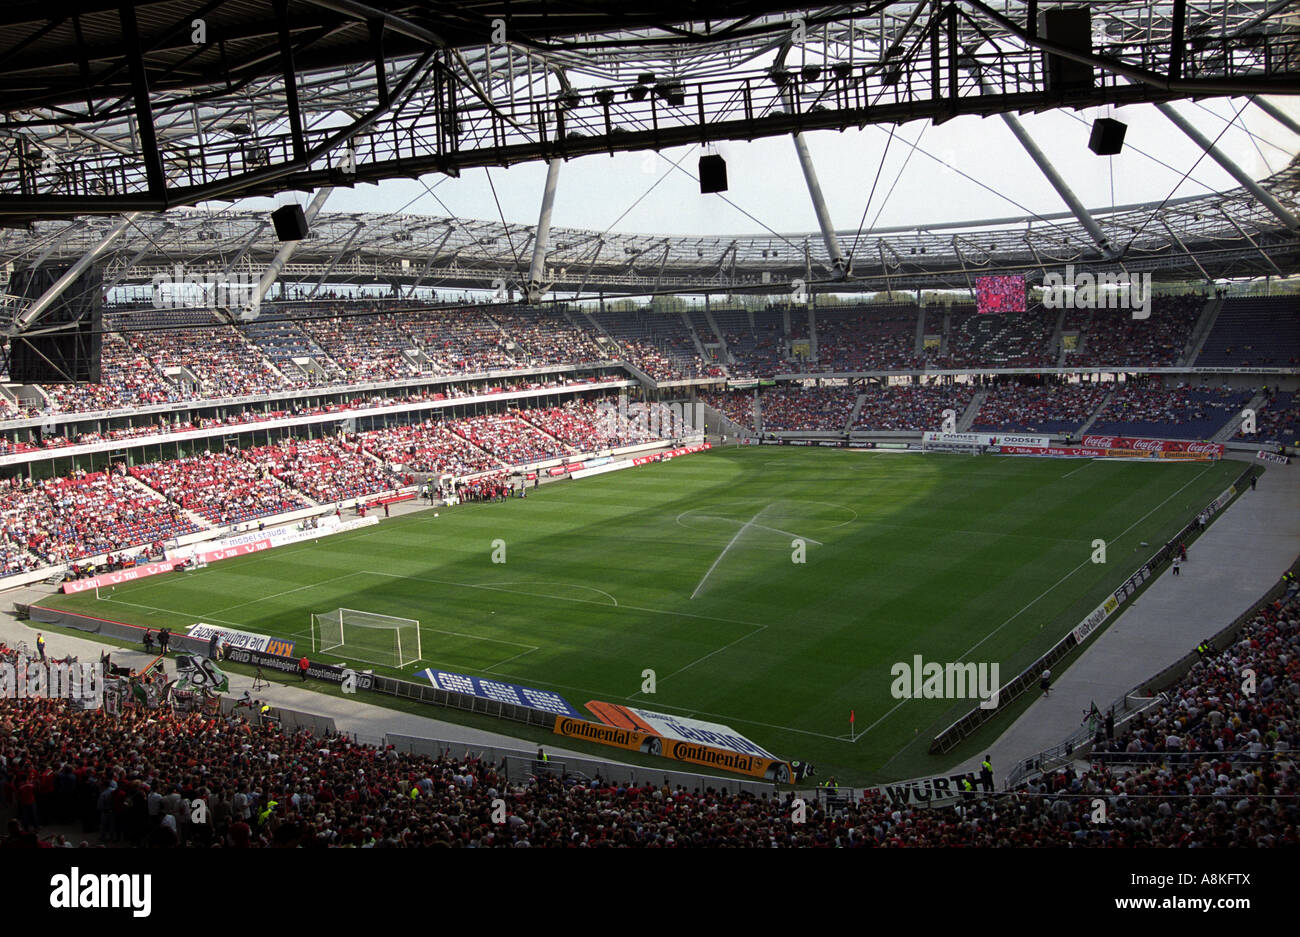 The AWD Arena, home to Hannover 96 Football Club, Lower Saxony, Germany. - Stock Image